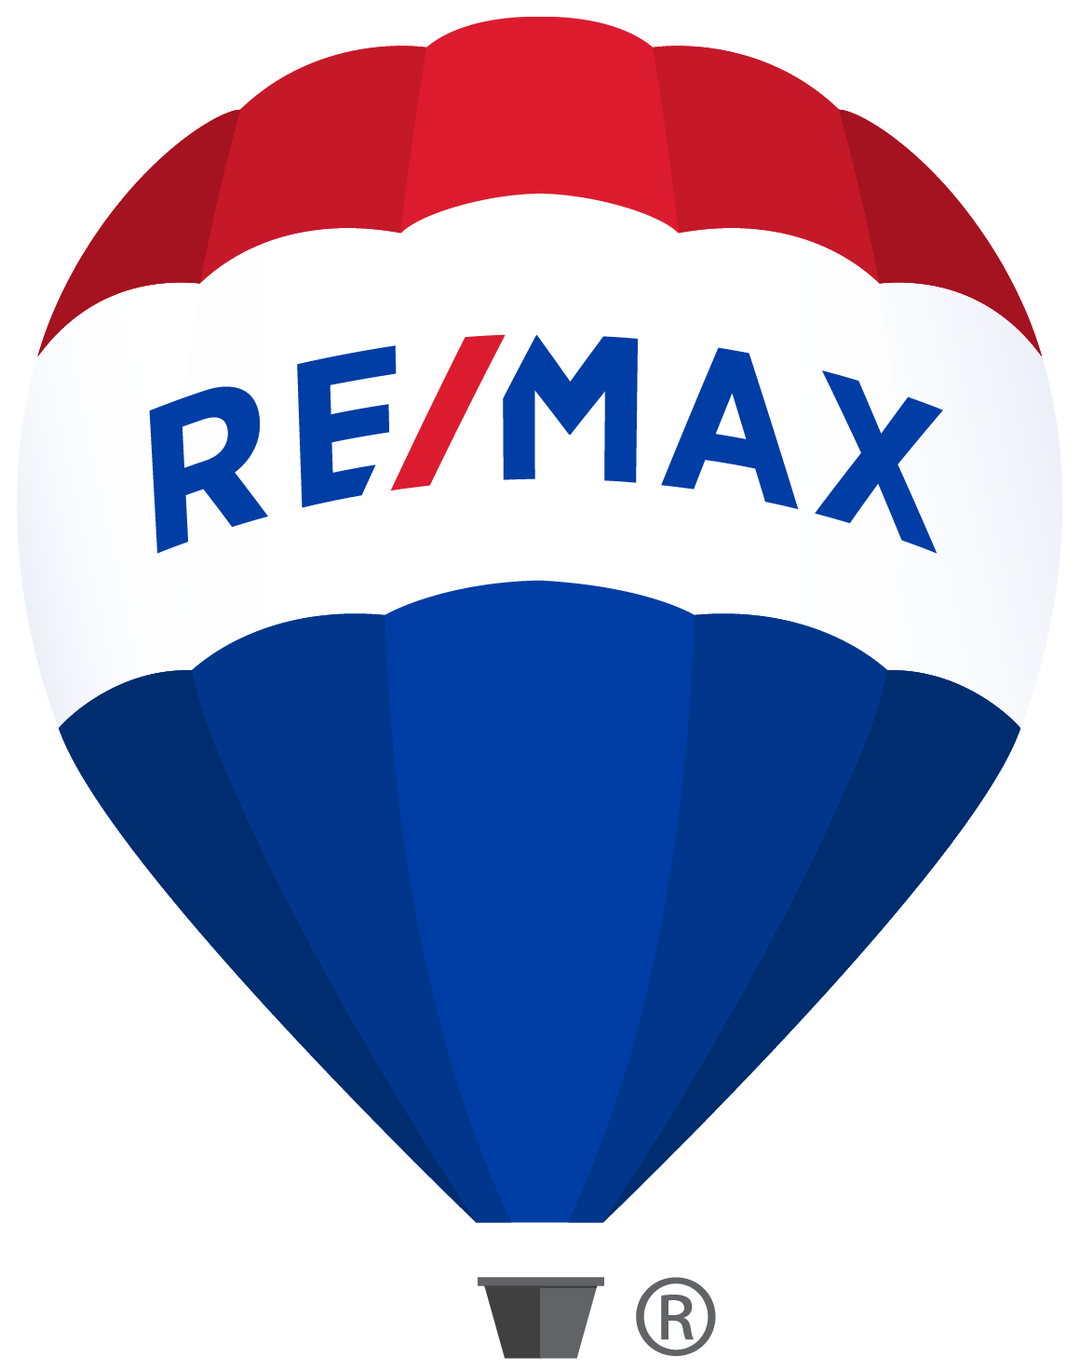 Nuevo_Globo_REMAX_.png